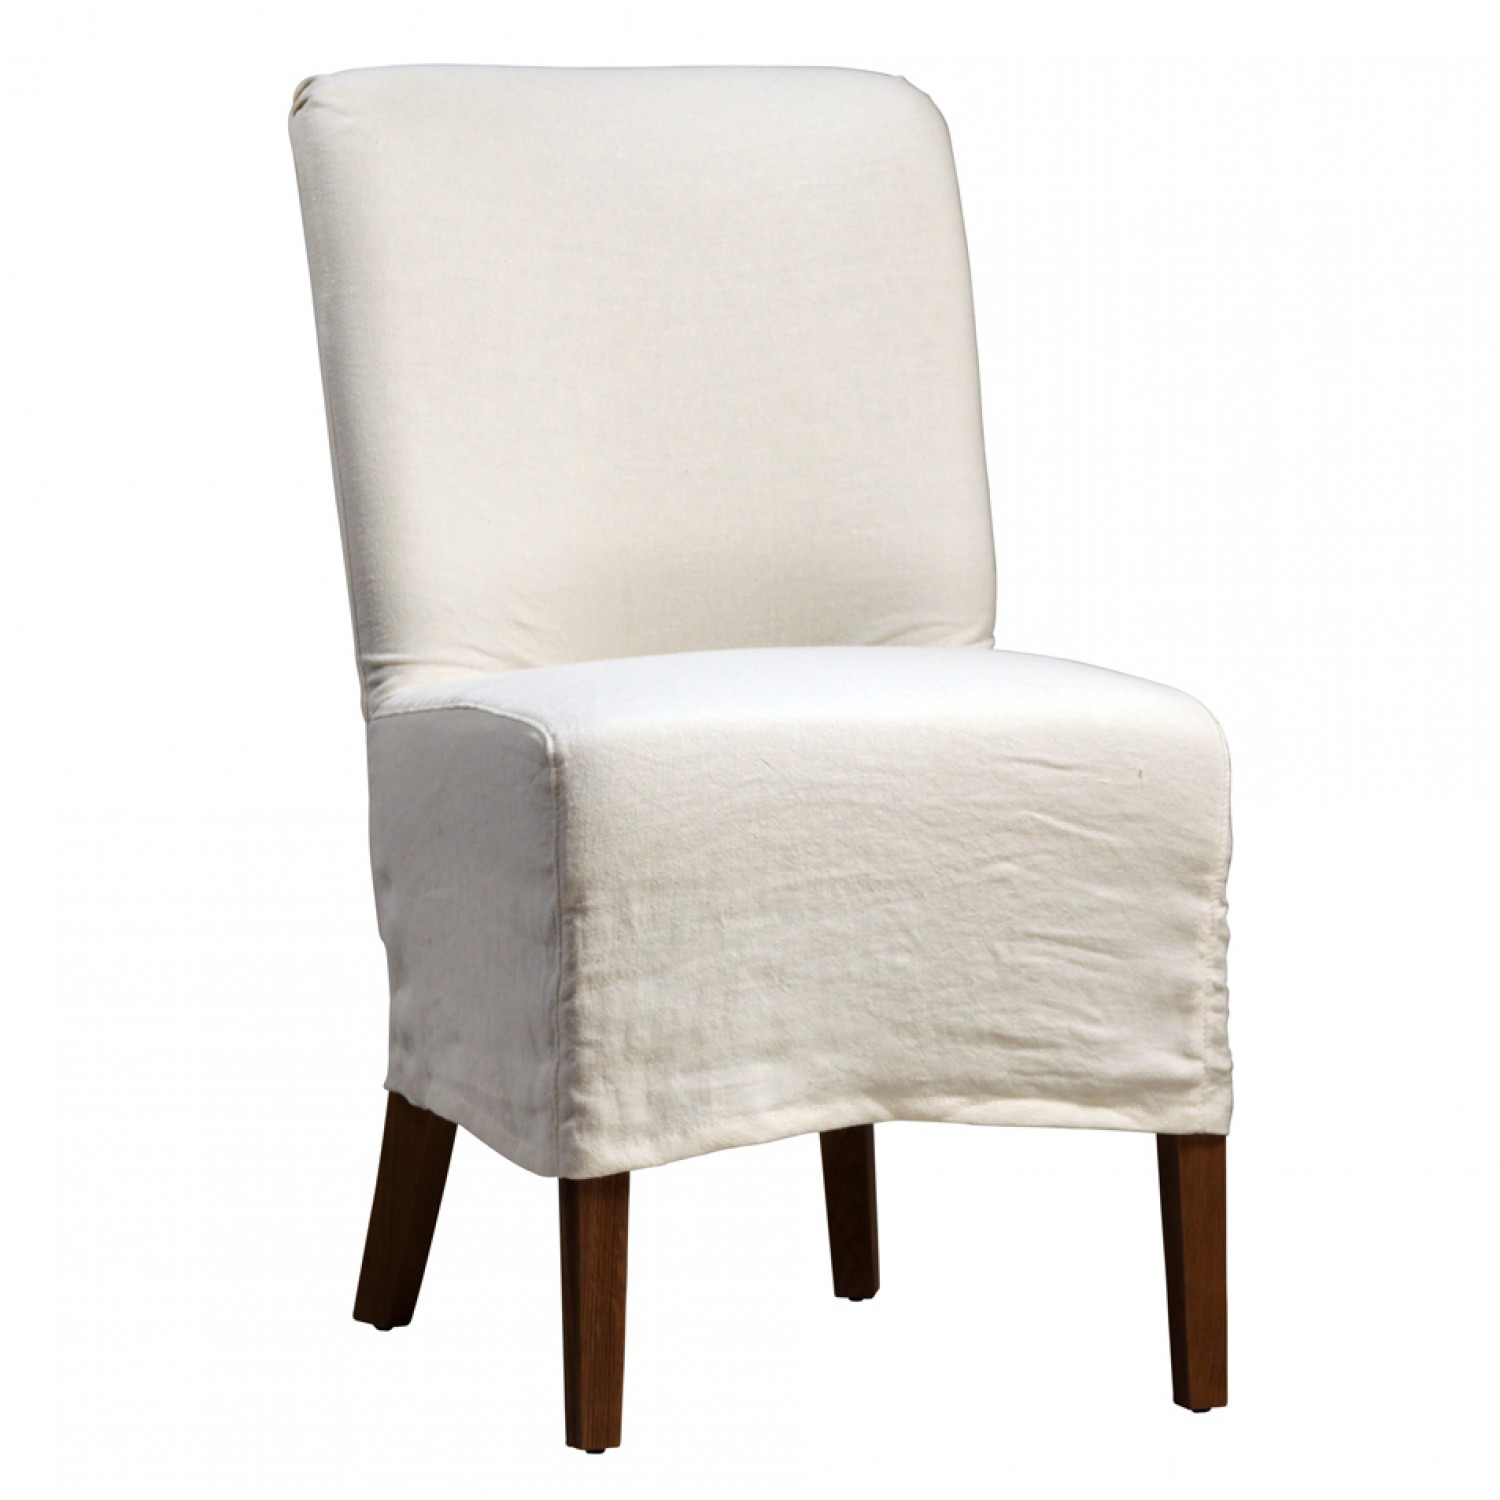 White Dining Chair Slipcovers Dining Room Chairs Archives Design Your Home